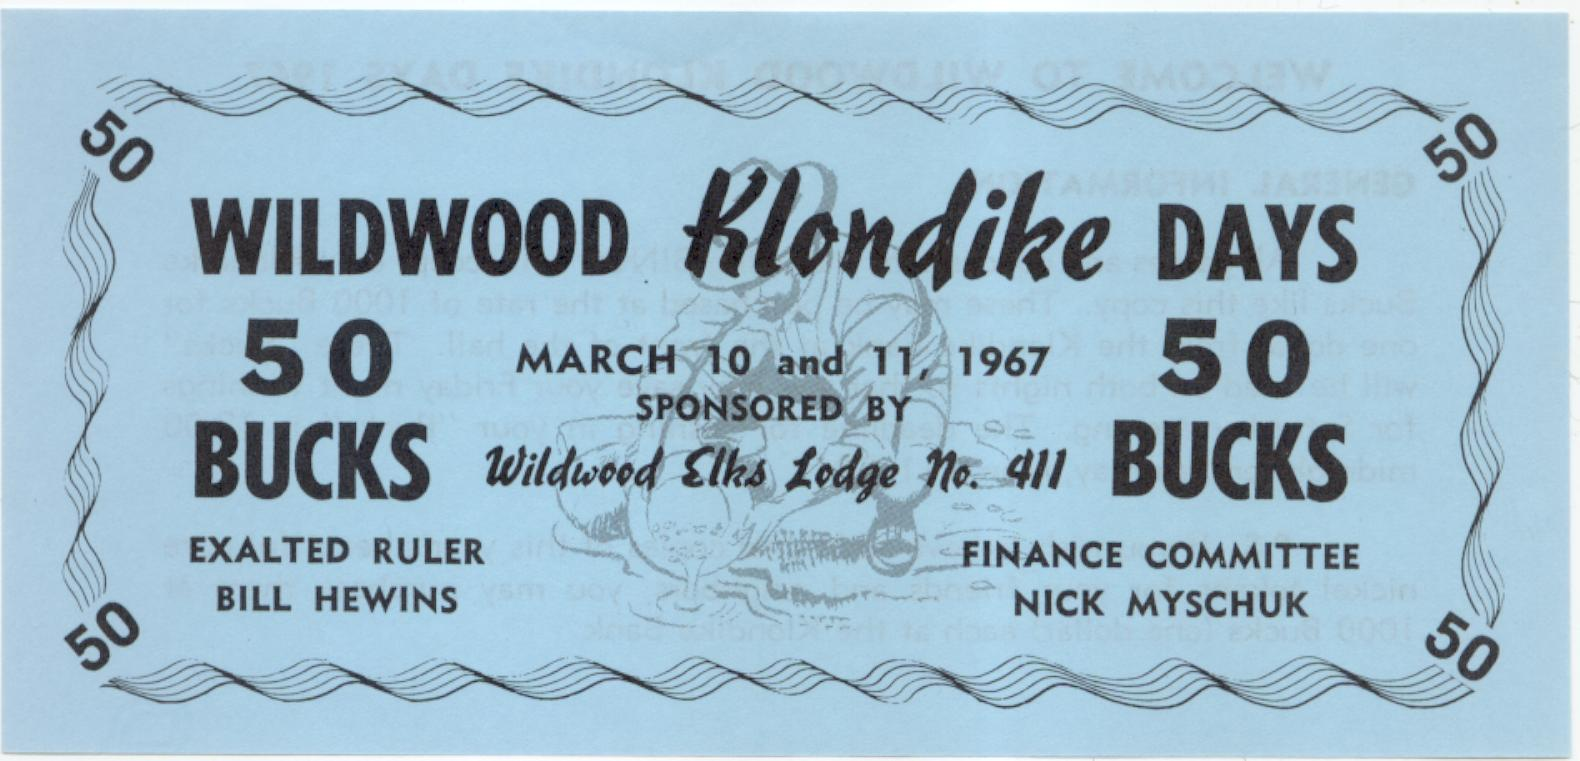 1967 Wildwood Alberta 50 Bucks Trade Note or Script